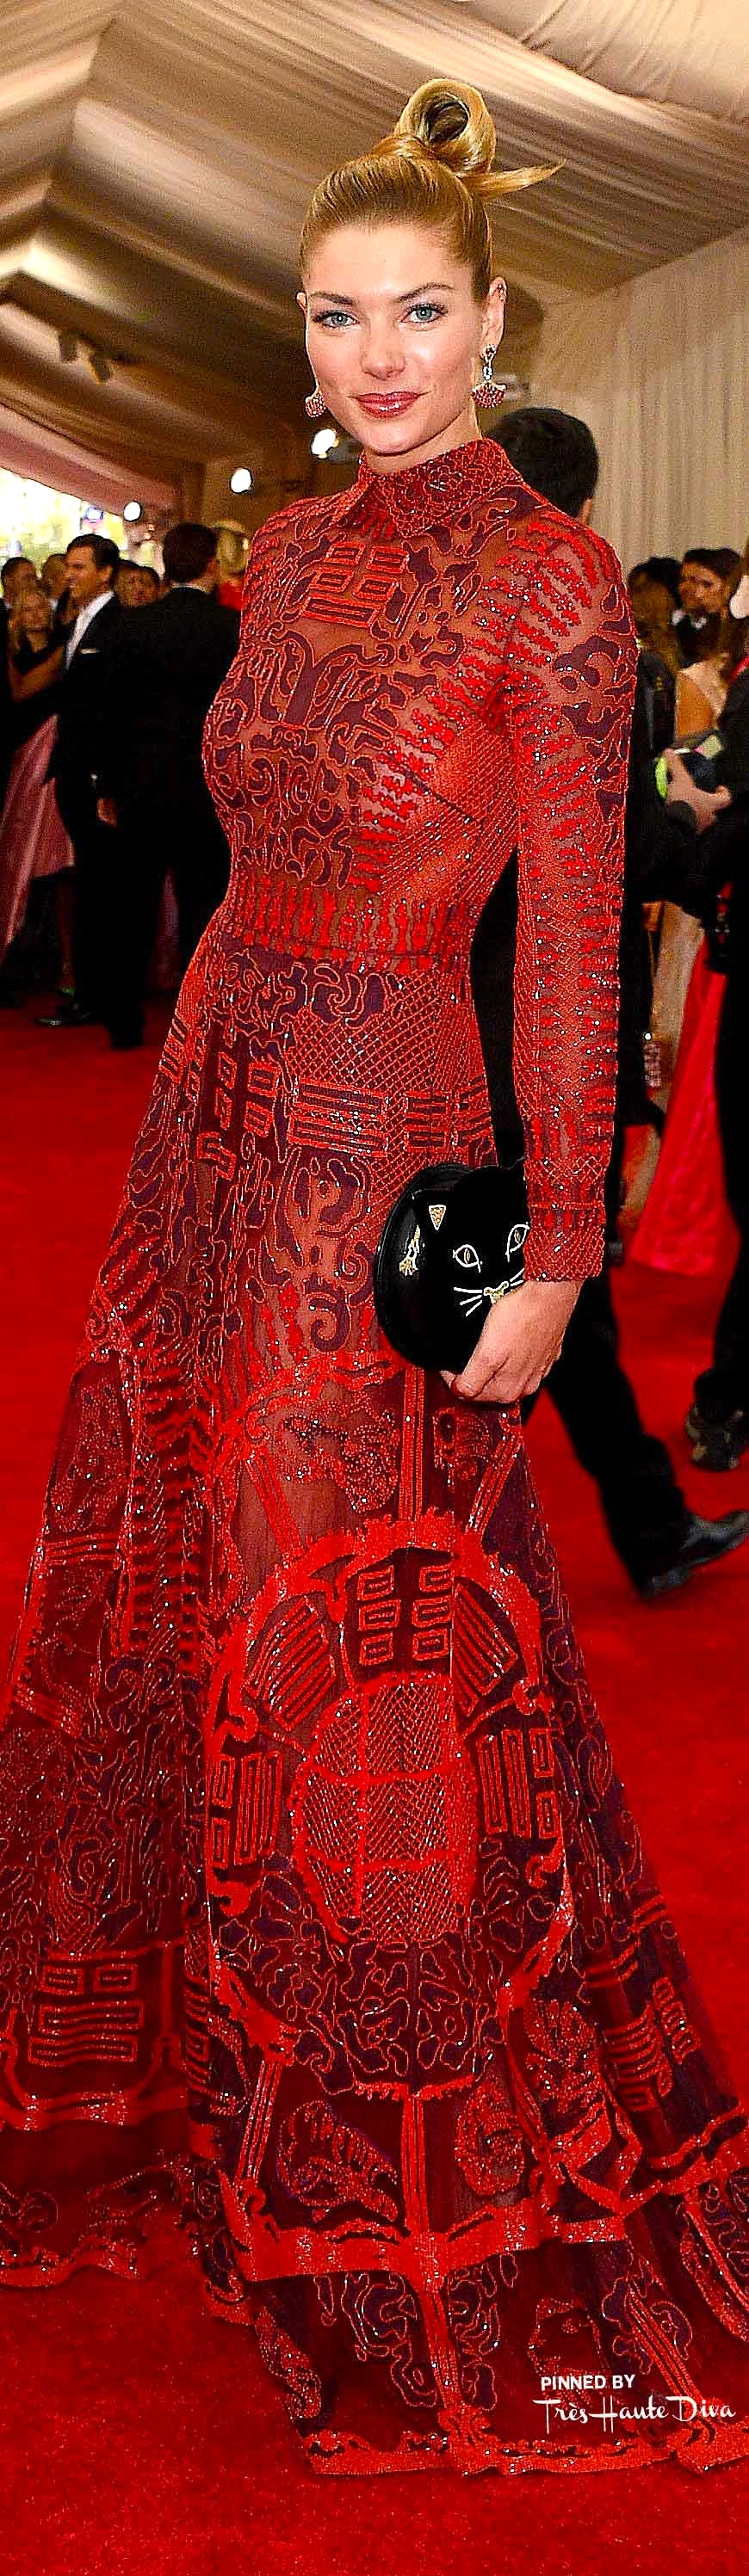 Jessica Hart in Valentino and Stura earrings Getty Images/ Larry Busacca